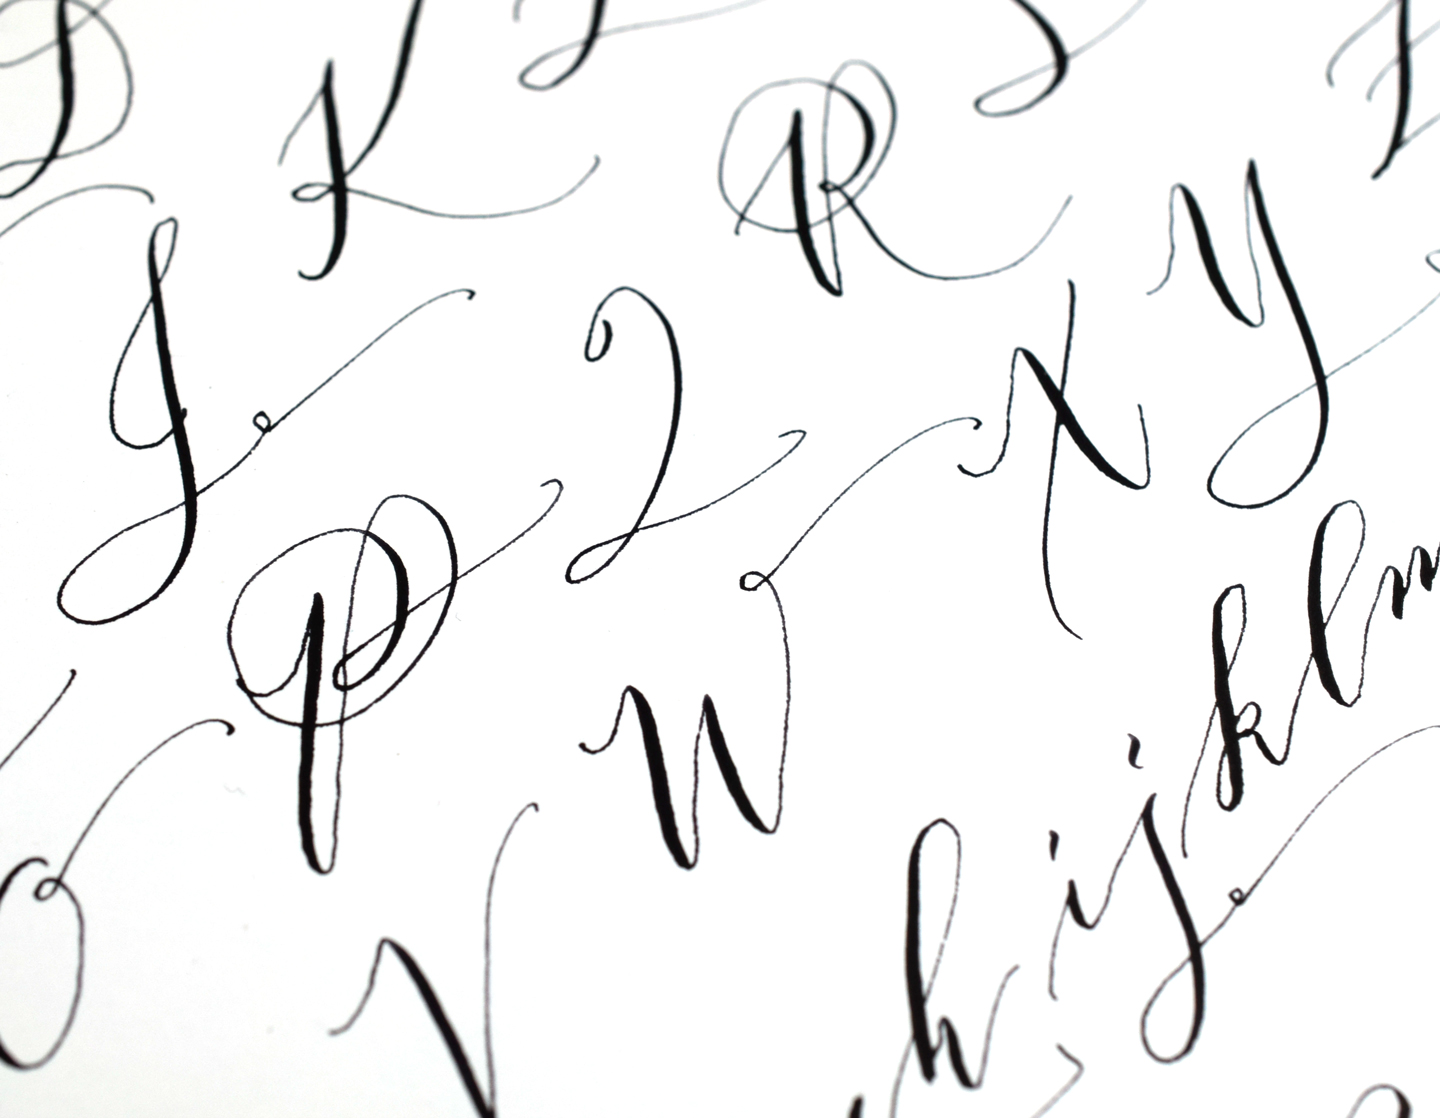 A Calligraphy Practice Reality Check | The Postman's Knock